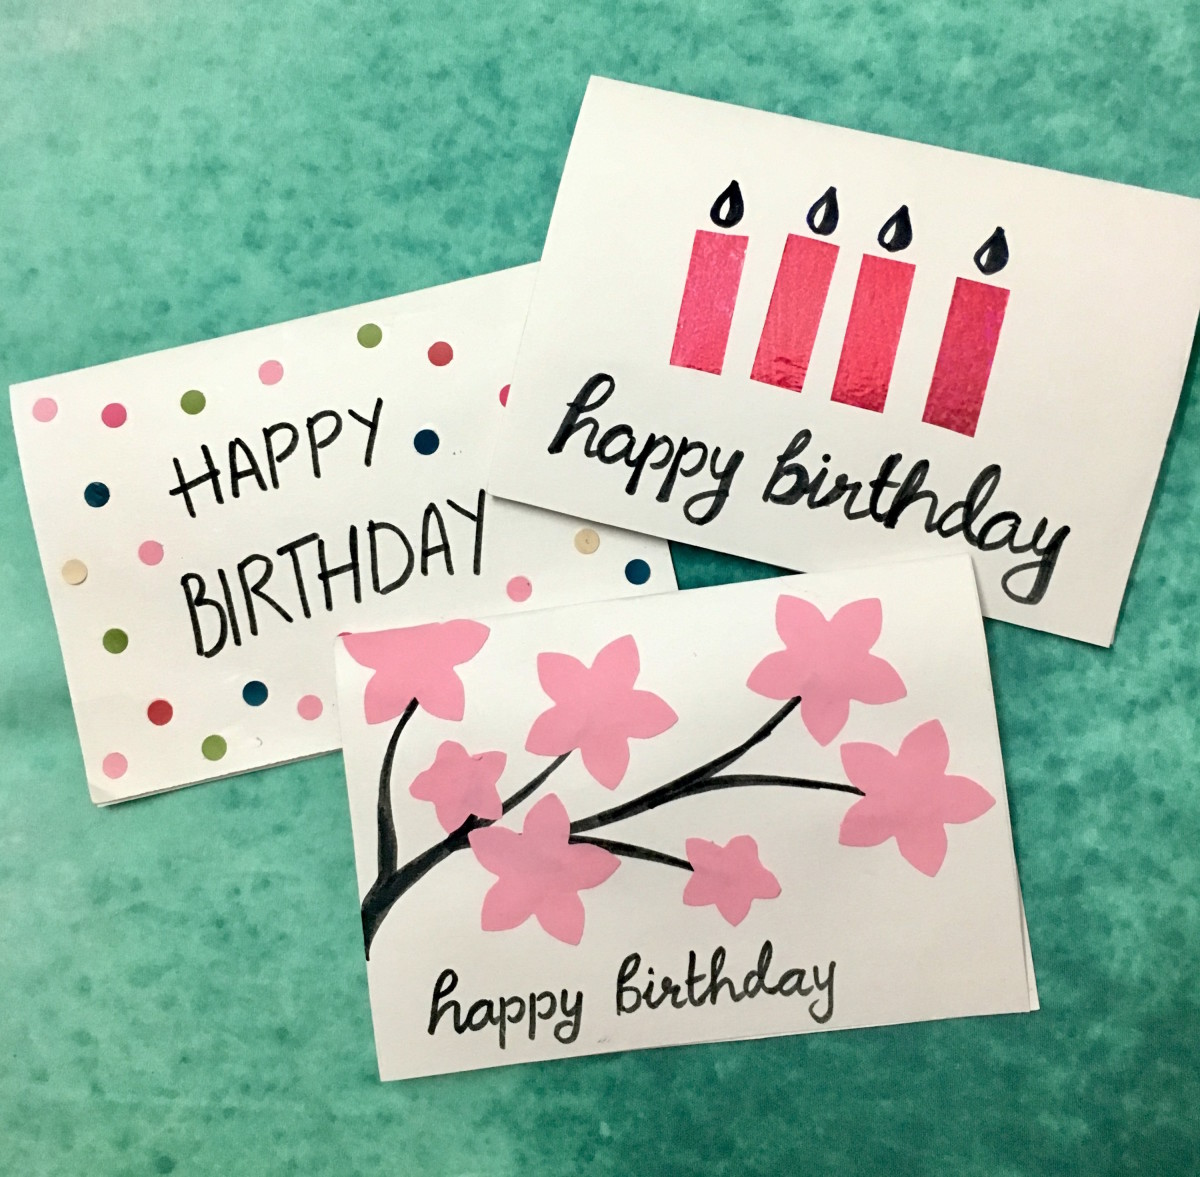 3 Easy Birthday DIY Greeting Card Ideas: 5-Minute DIY Projects